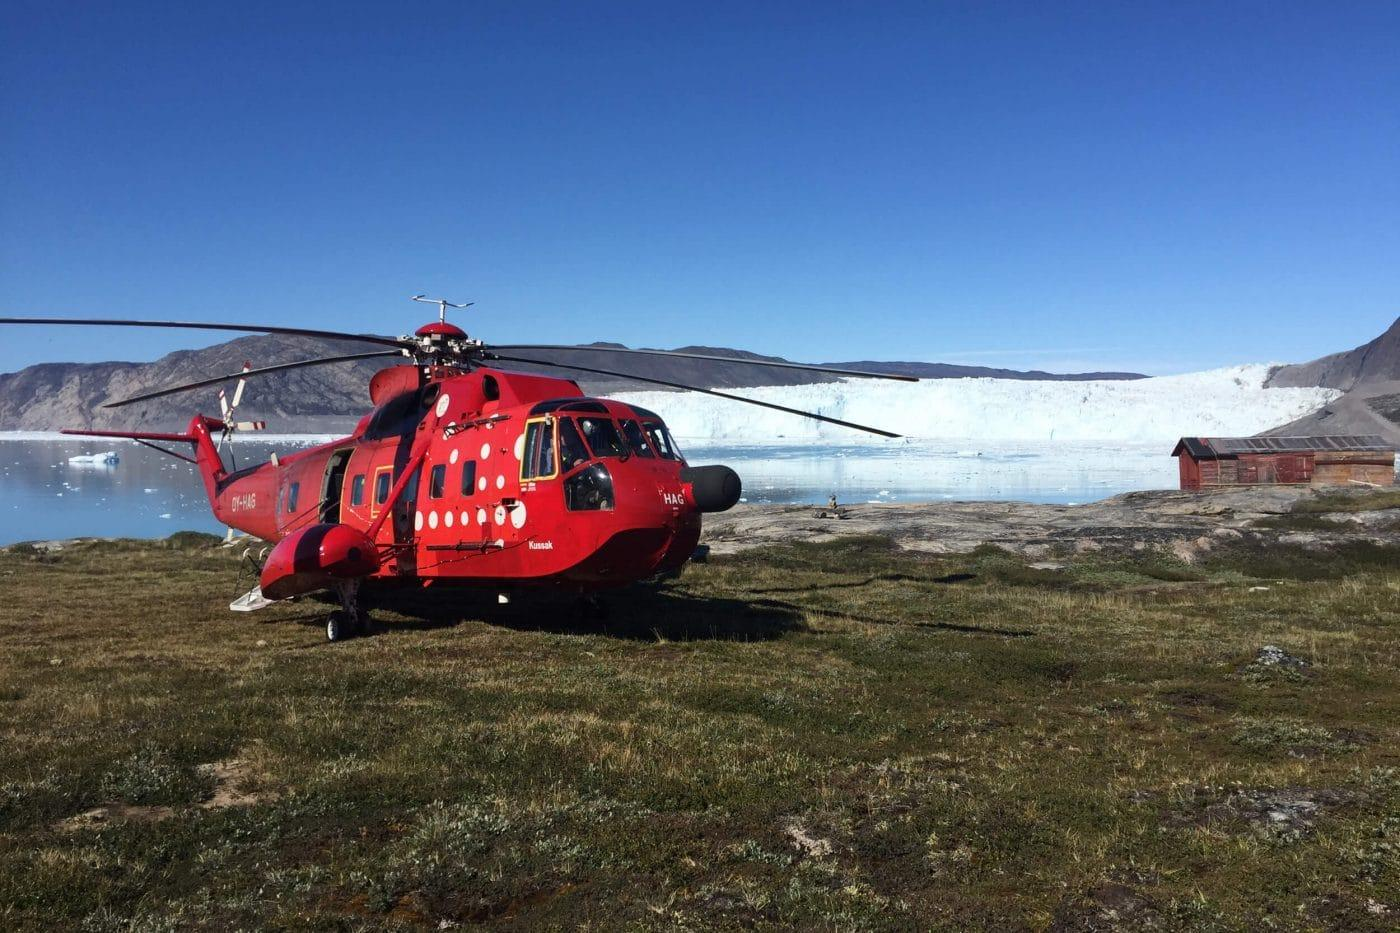 Red helicopter about to take off close to the water. Photo by Arctic Nomad, Visit Greenland